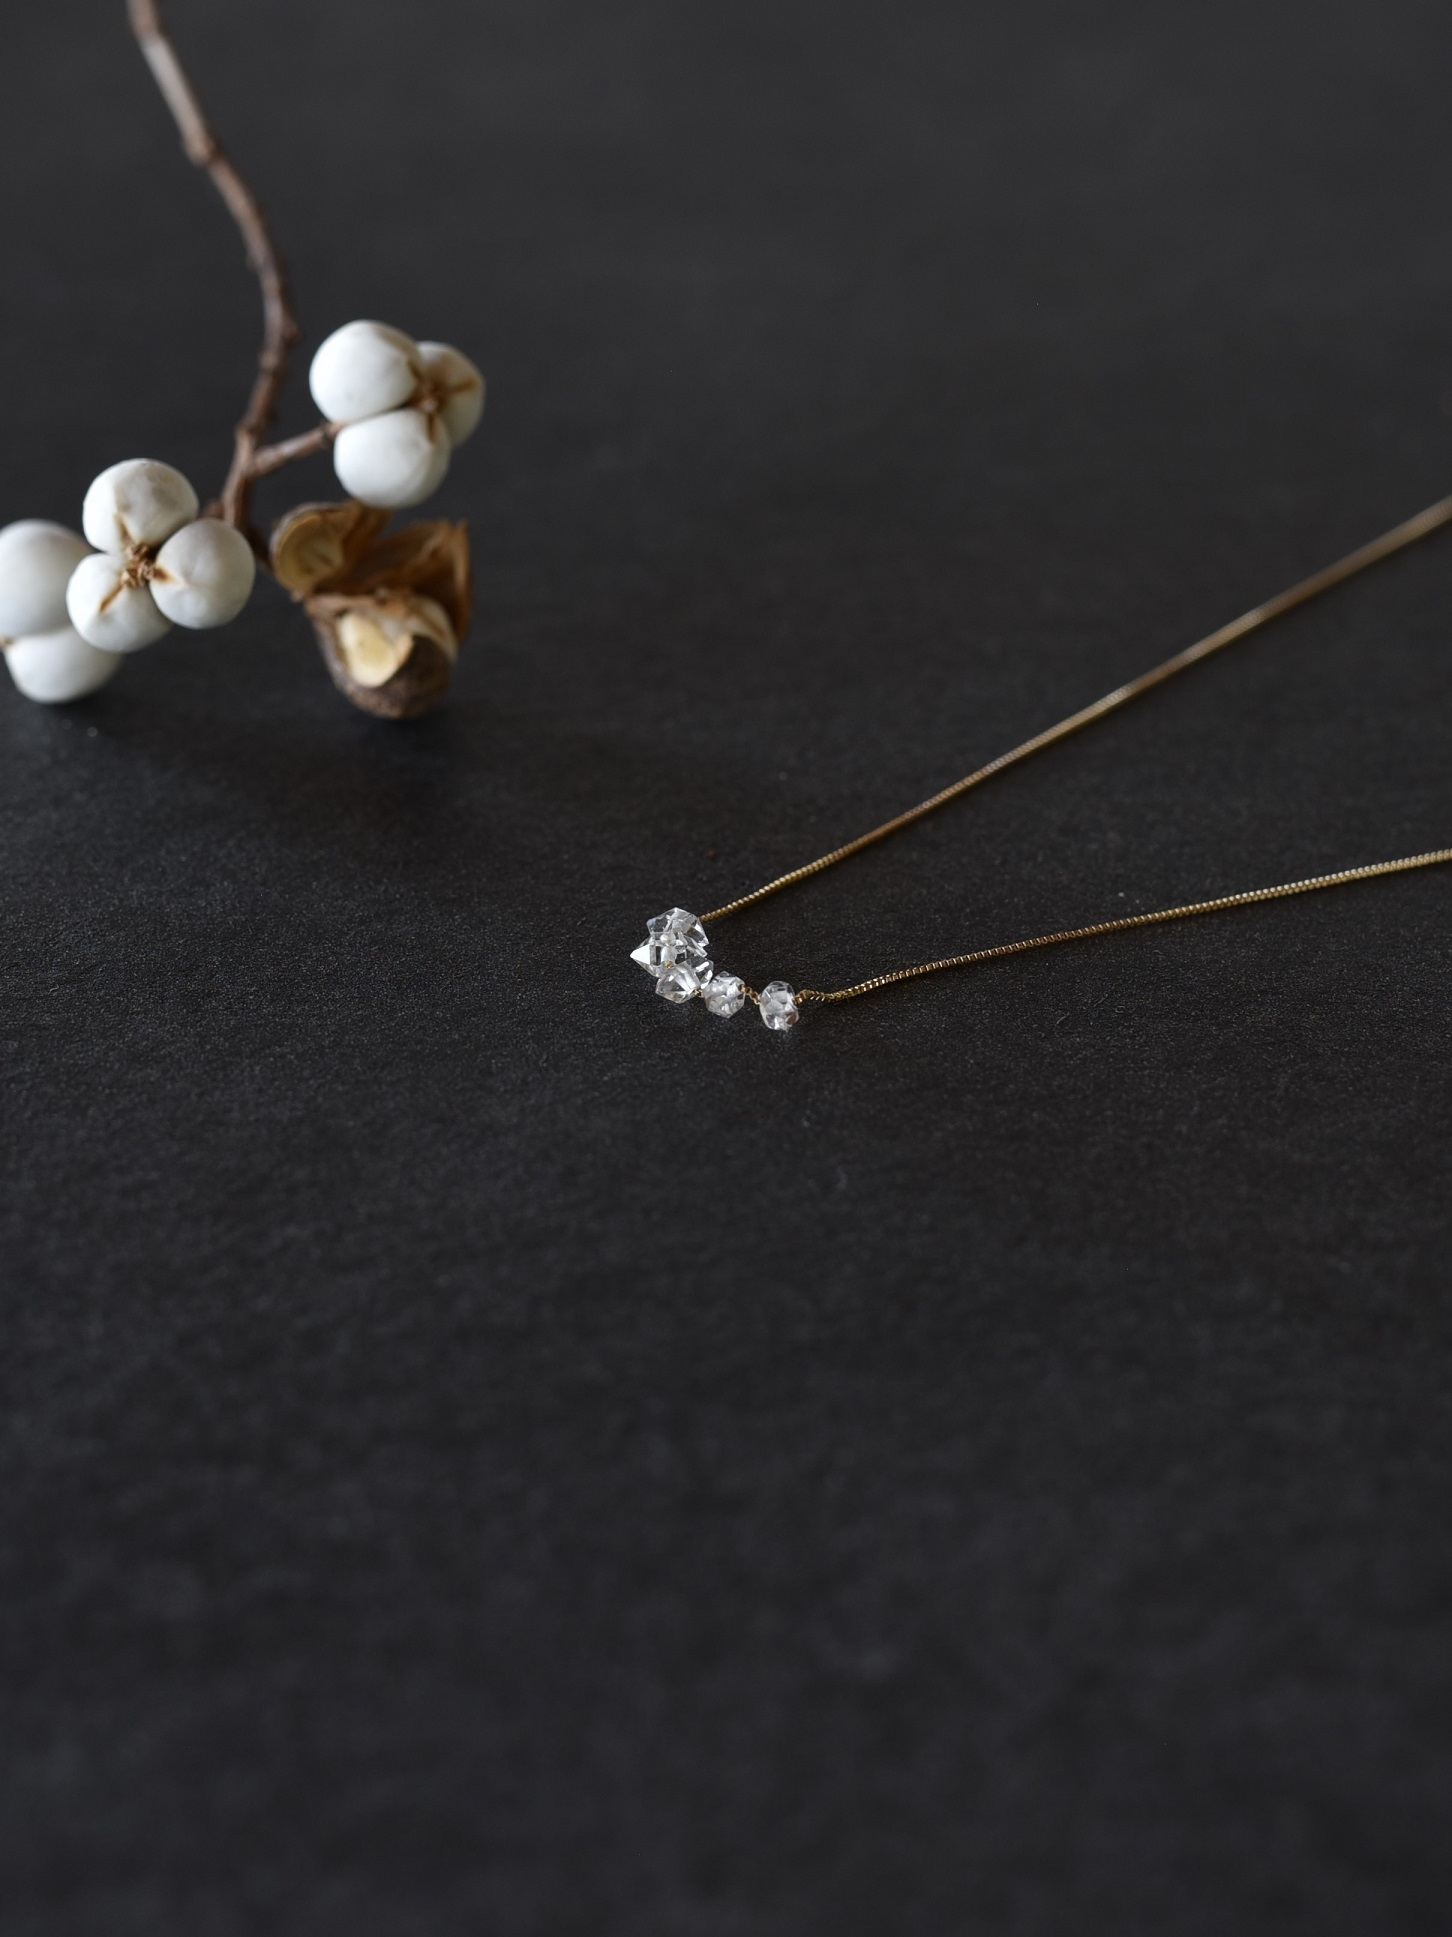 accessories mau|N-25 ハーキマー5粒ネックレス